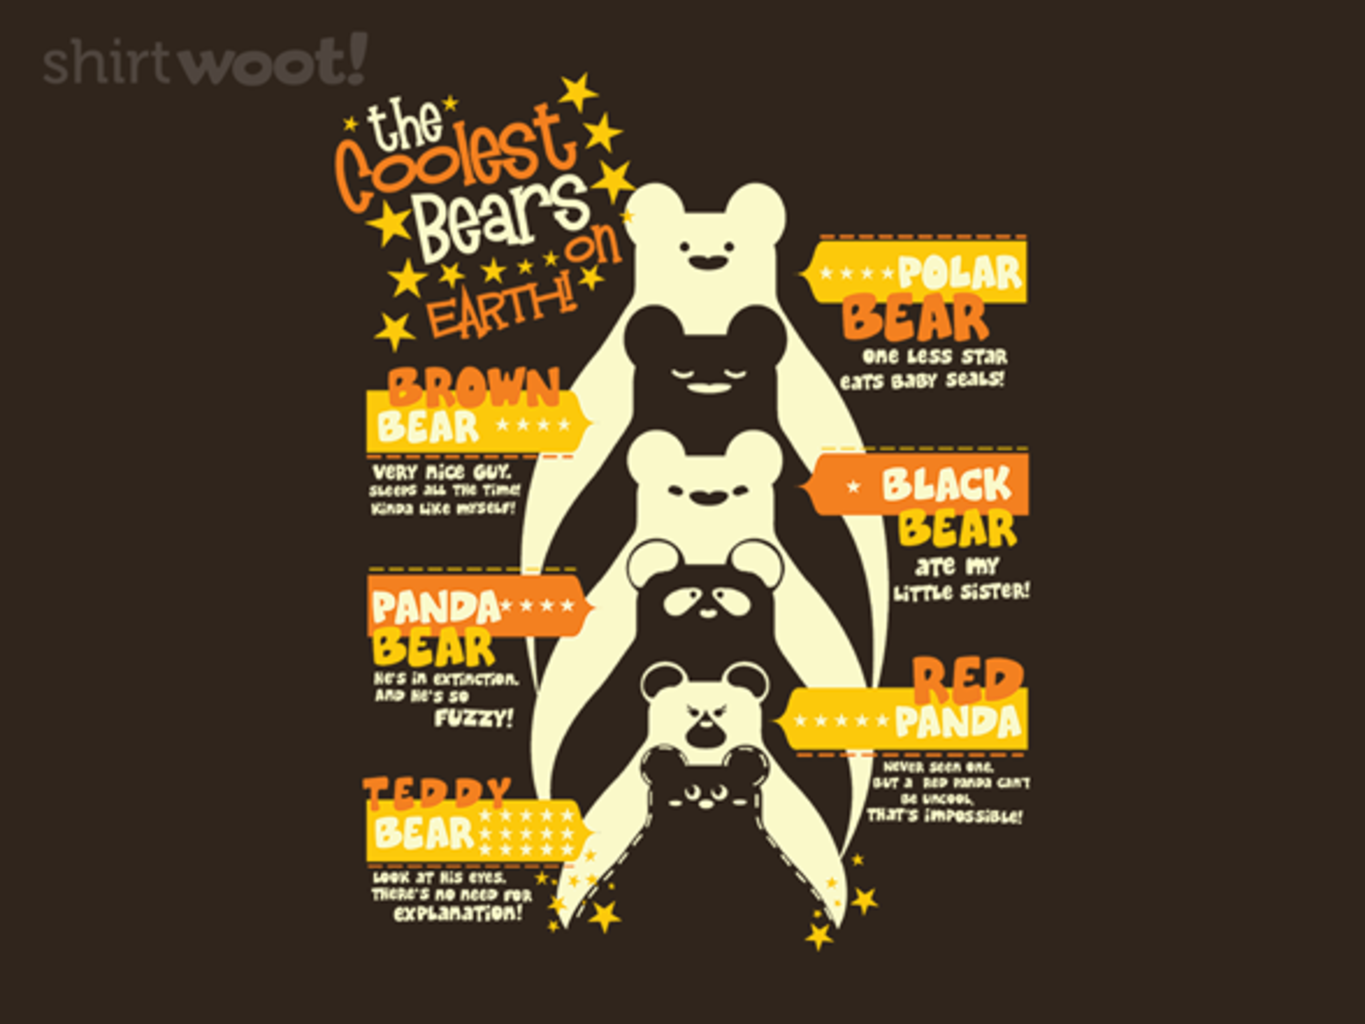 Woot!: The Coolest Bears - $8.00 + $5 standard shipping